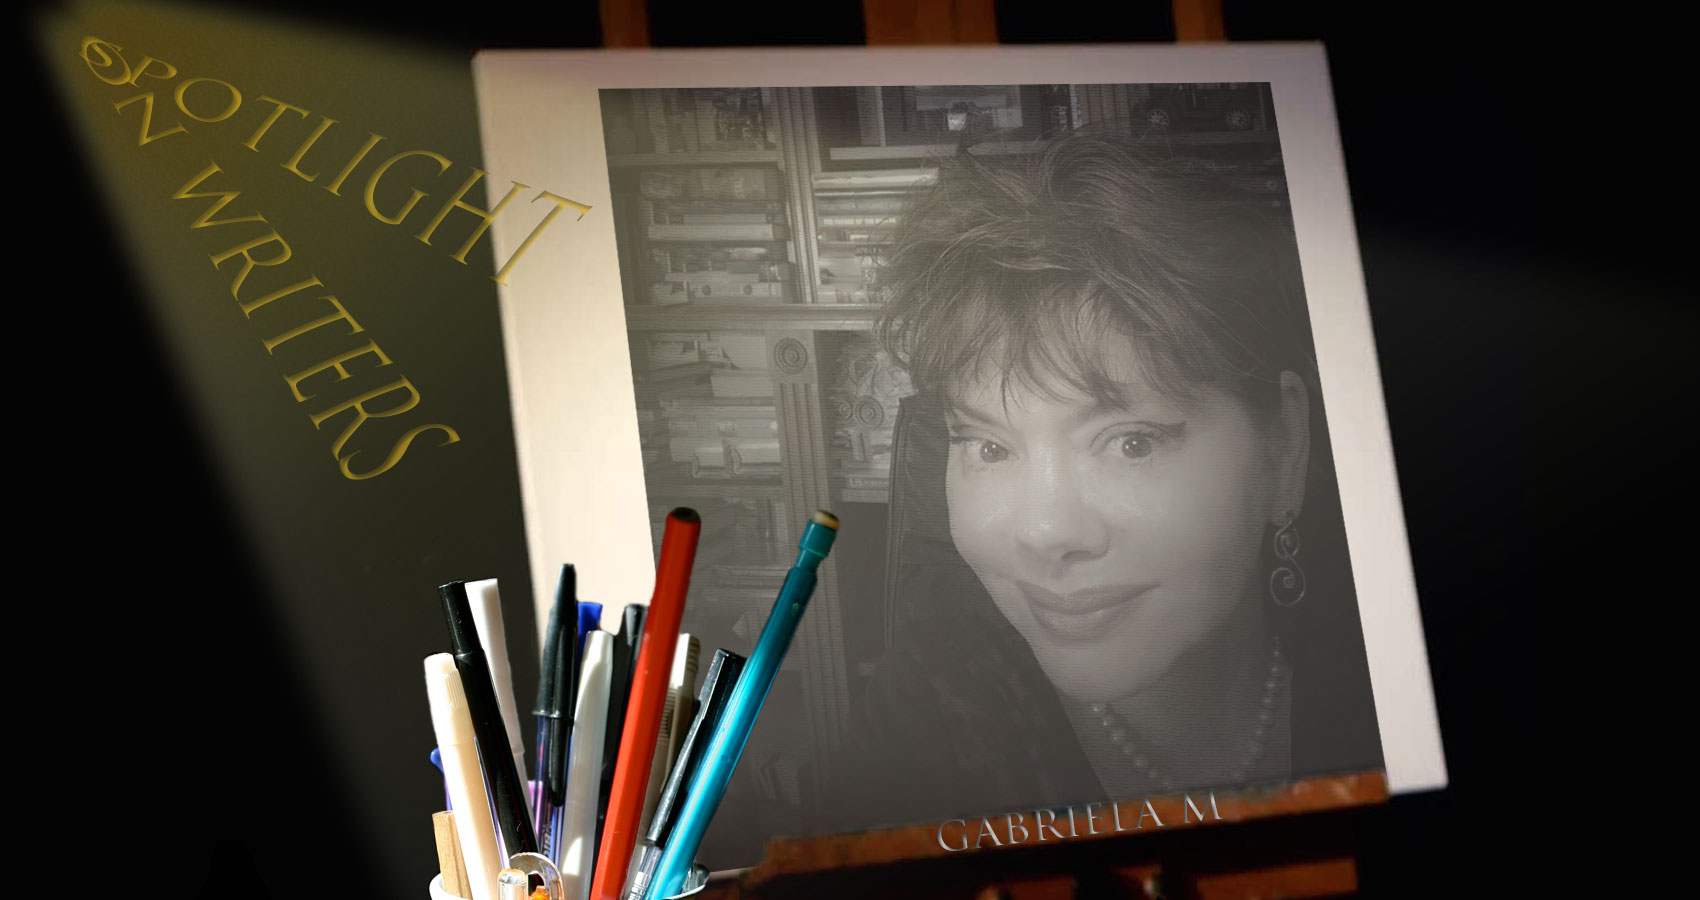 Spotlight On Writers - Gabriela M, an interview at Spillwords.com